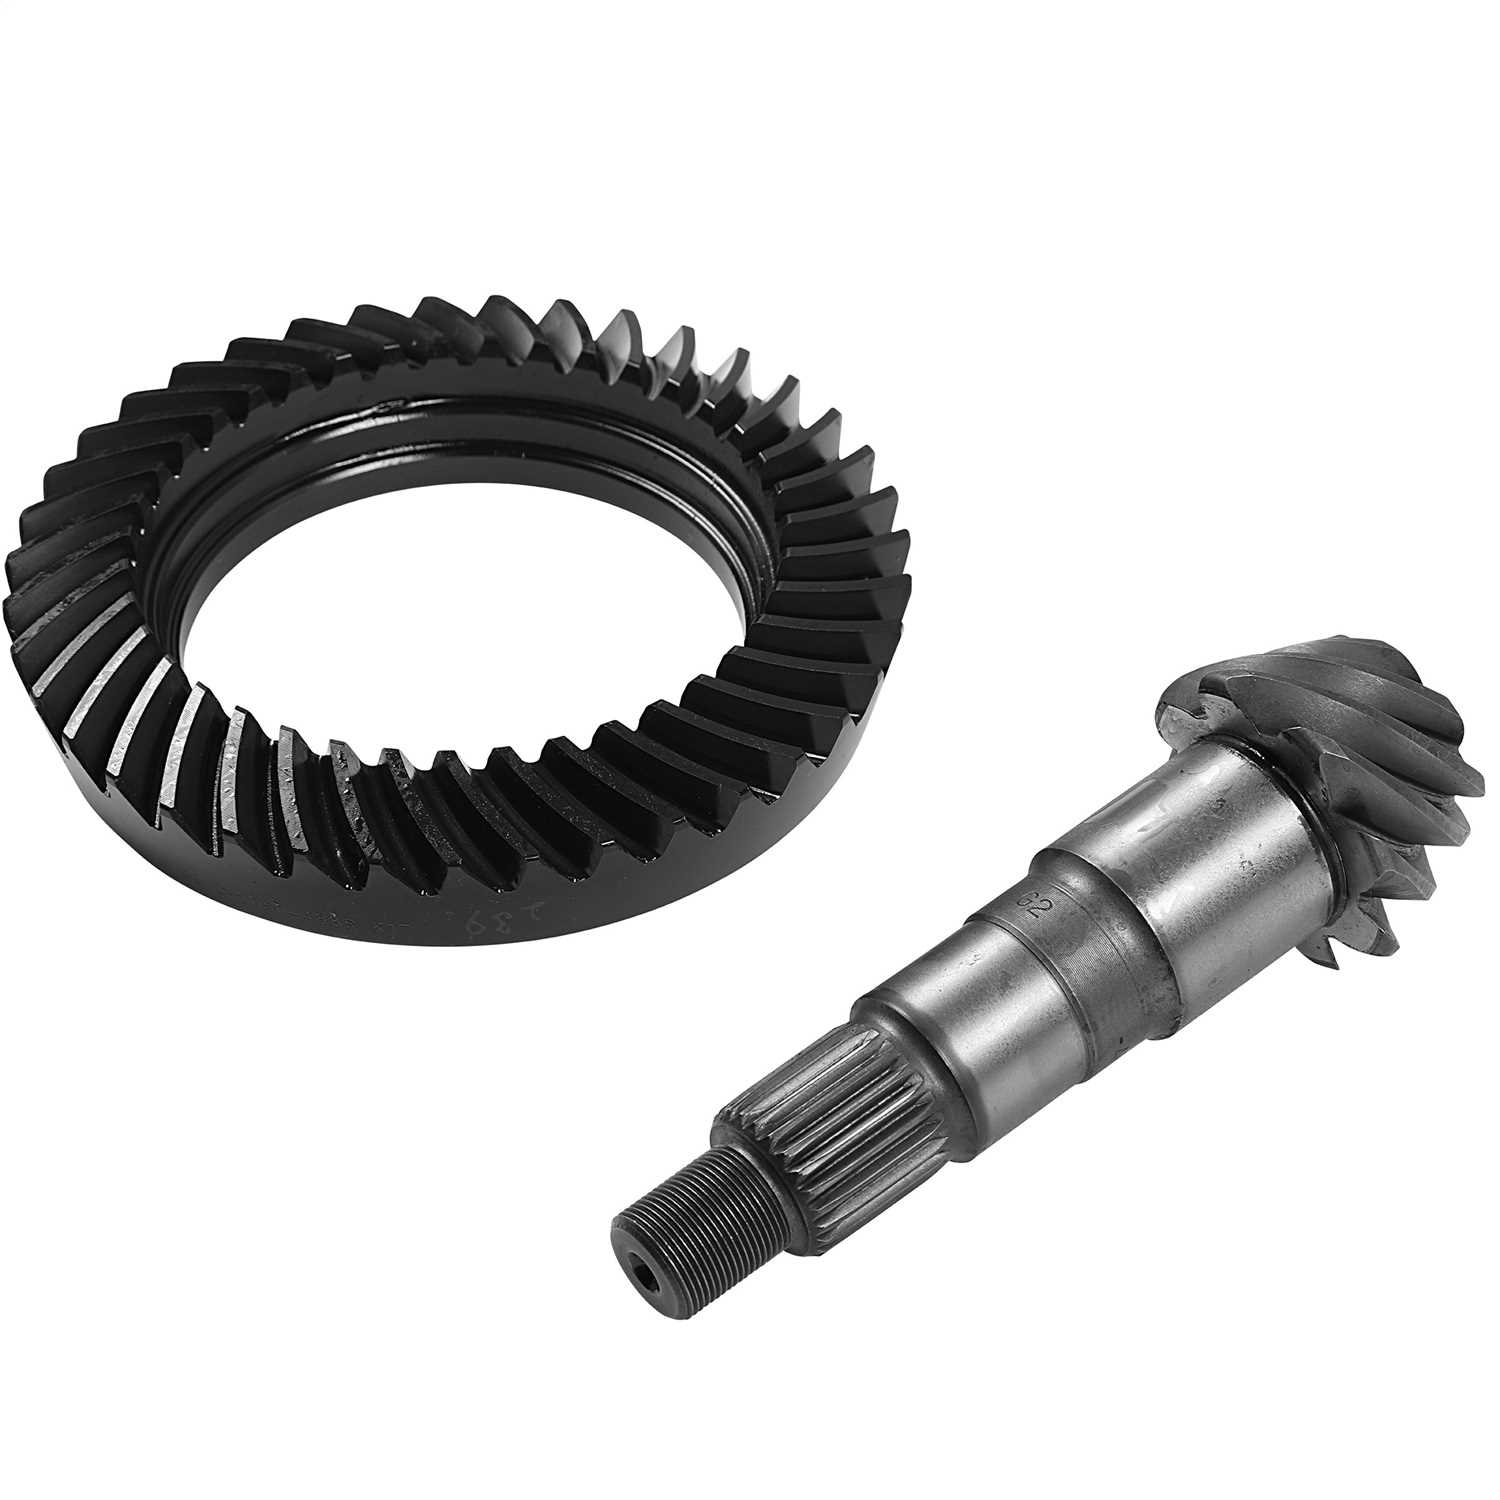 1-2149-410 G2 Axle and Gear Ring and Pinion Set